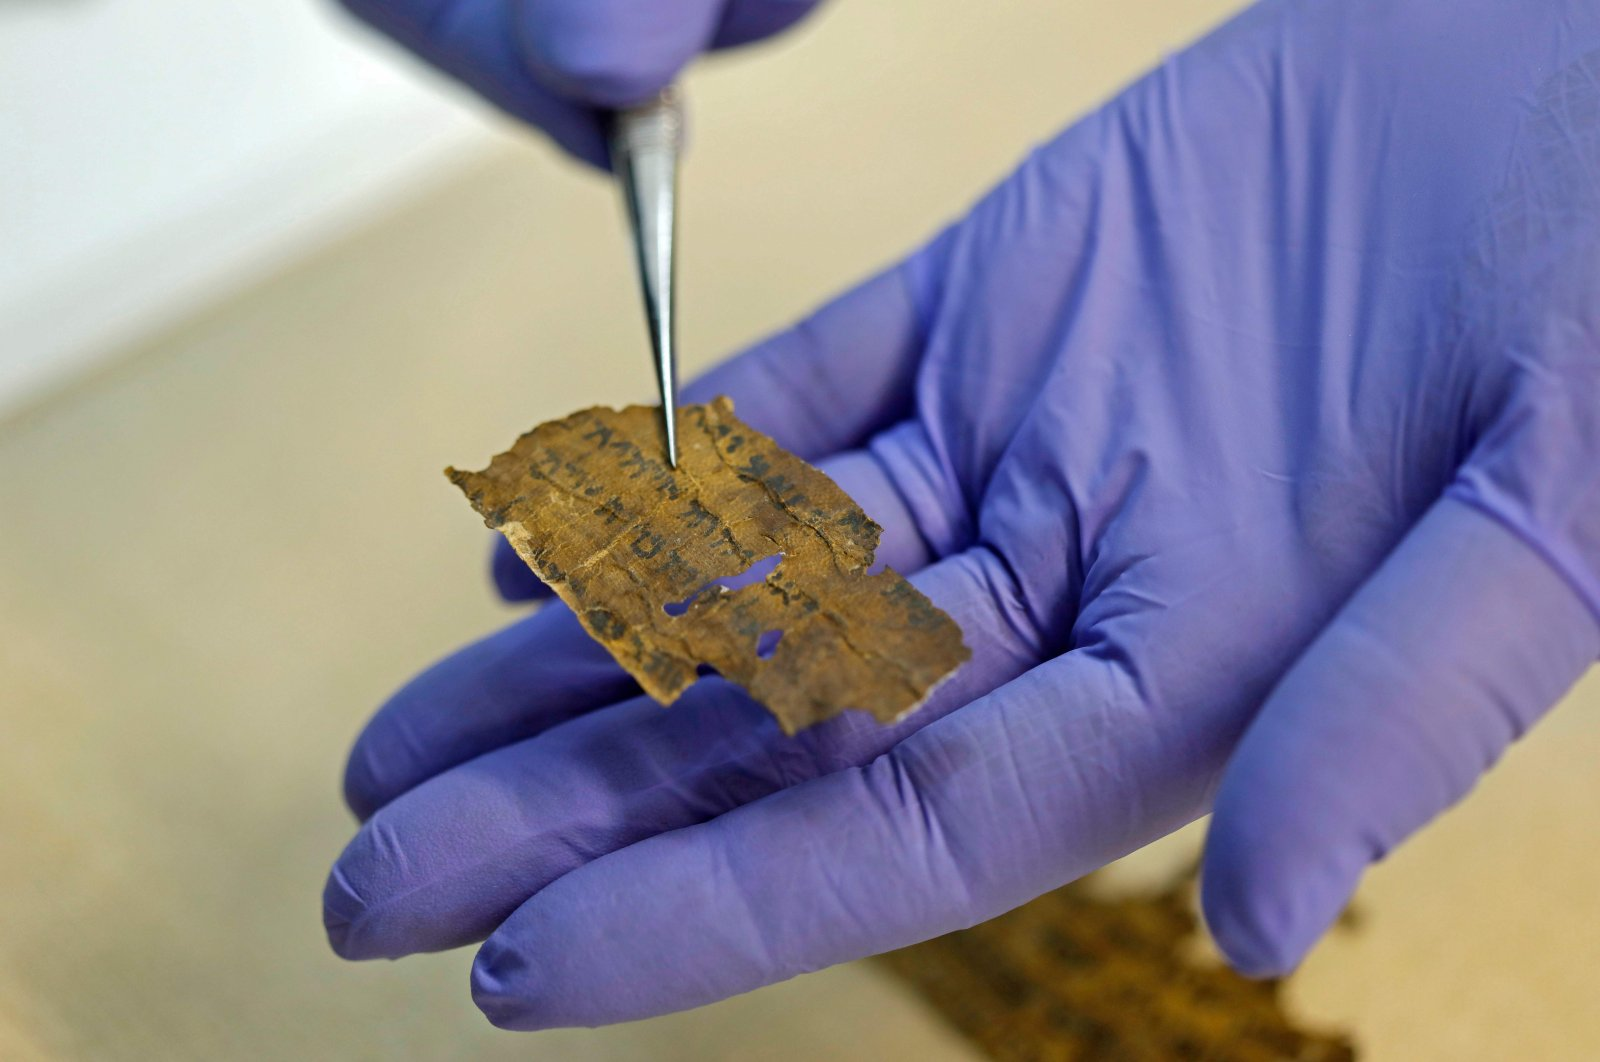 A conservator of the Israeli Antiquities Authority shows fragments of the Dead Sea Scrolls at their laboratory in Jerusalem, Israel, June 2, 2020. (AFP Photo)